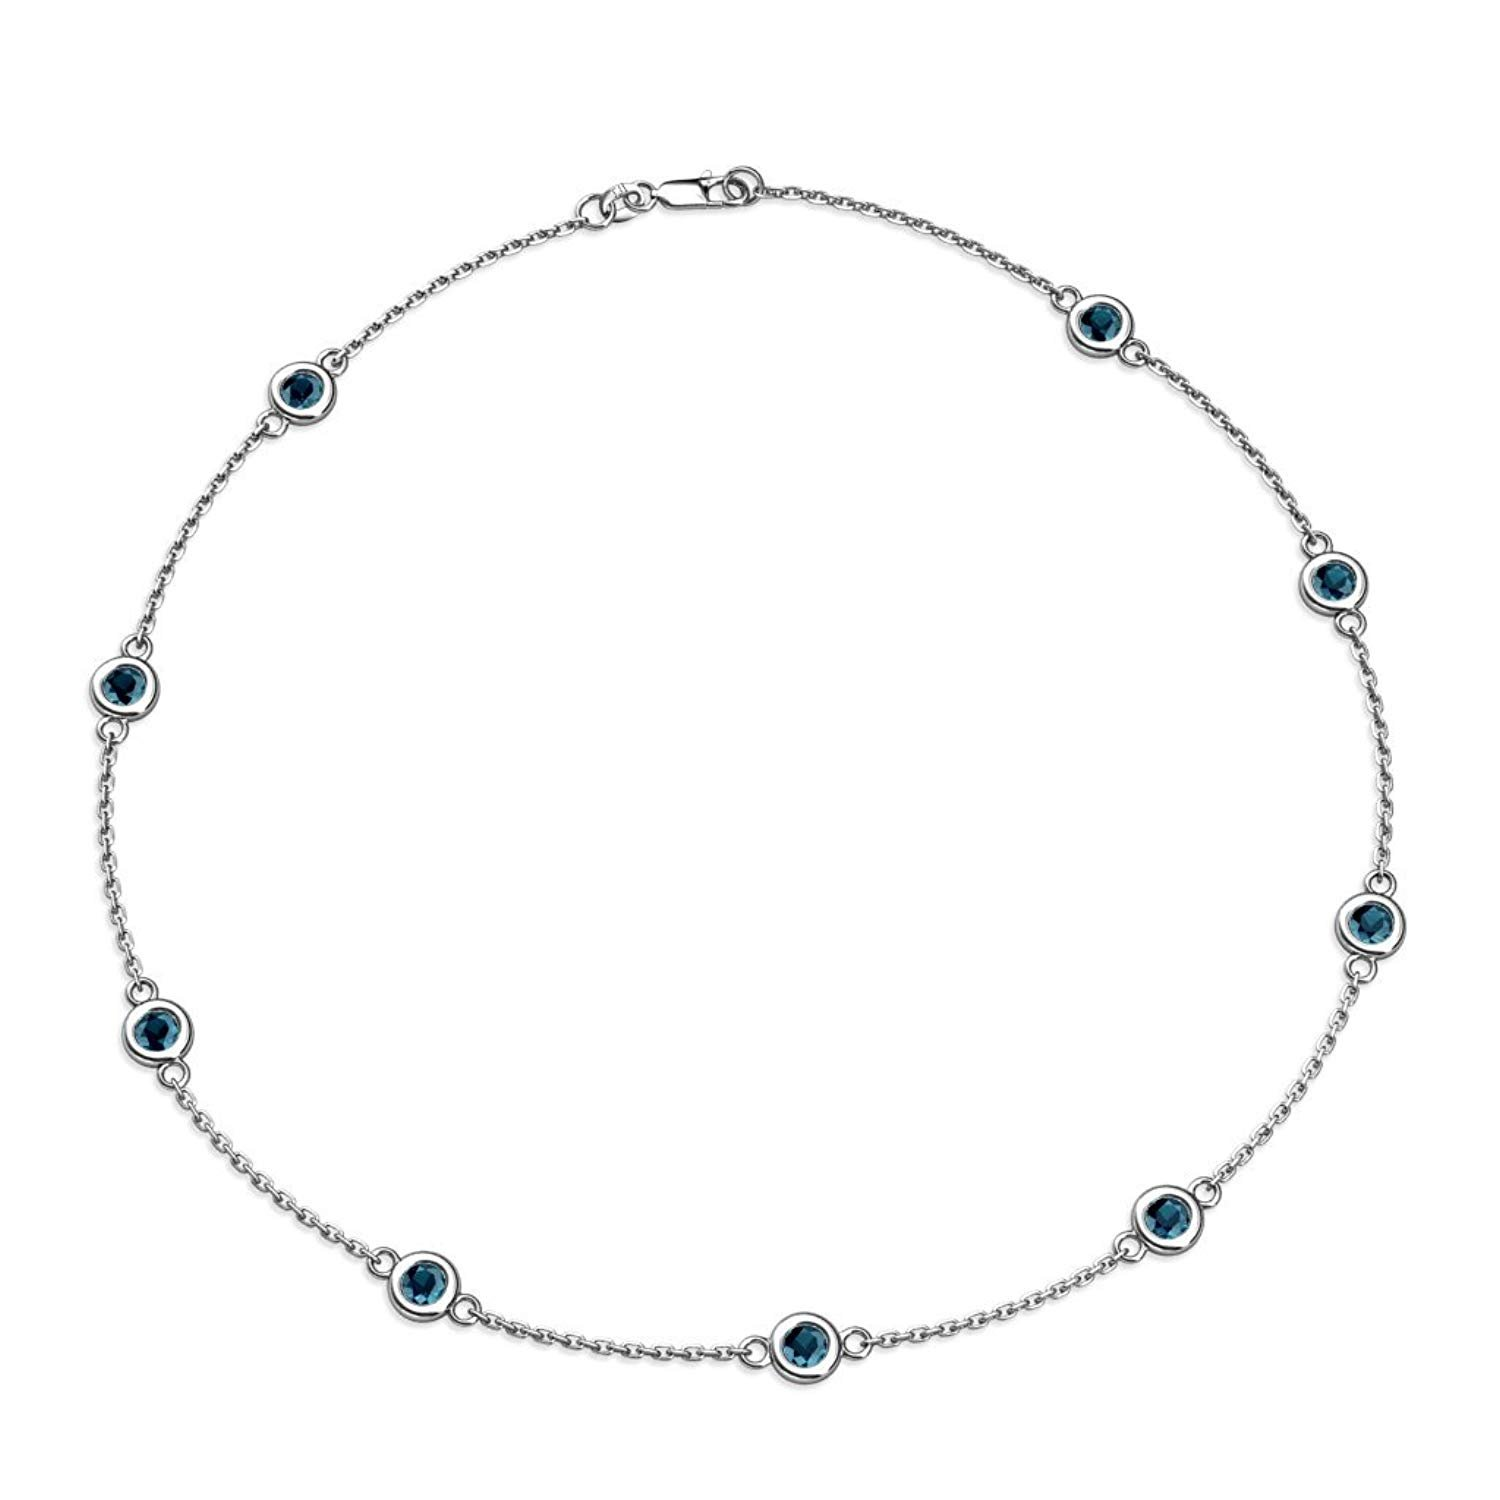 Blue Diamond 9 Station Necklace 2.25 cttw in 14K White Gold by TriJewels